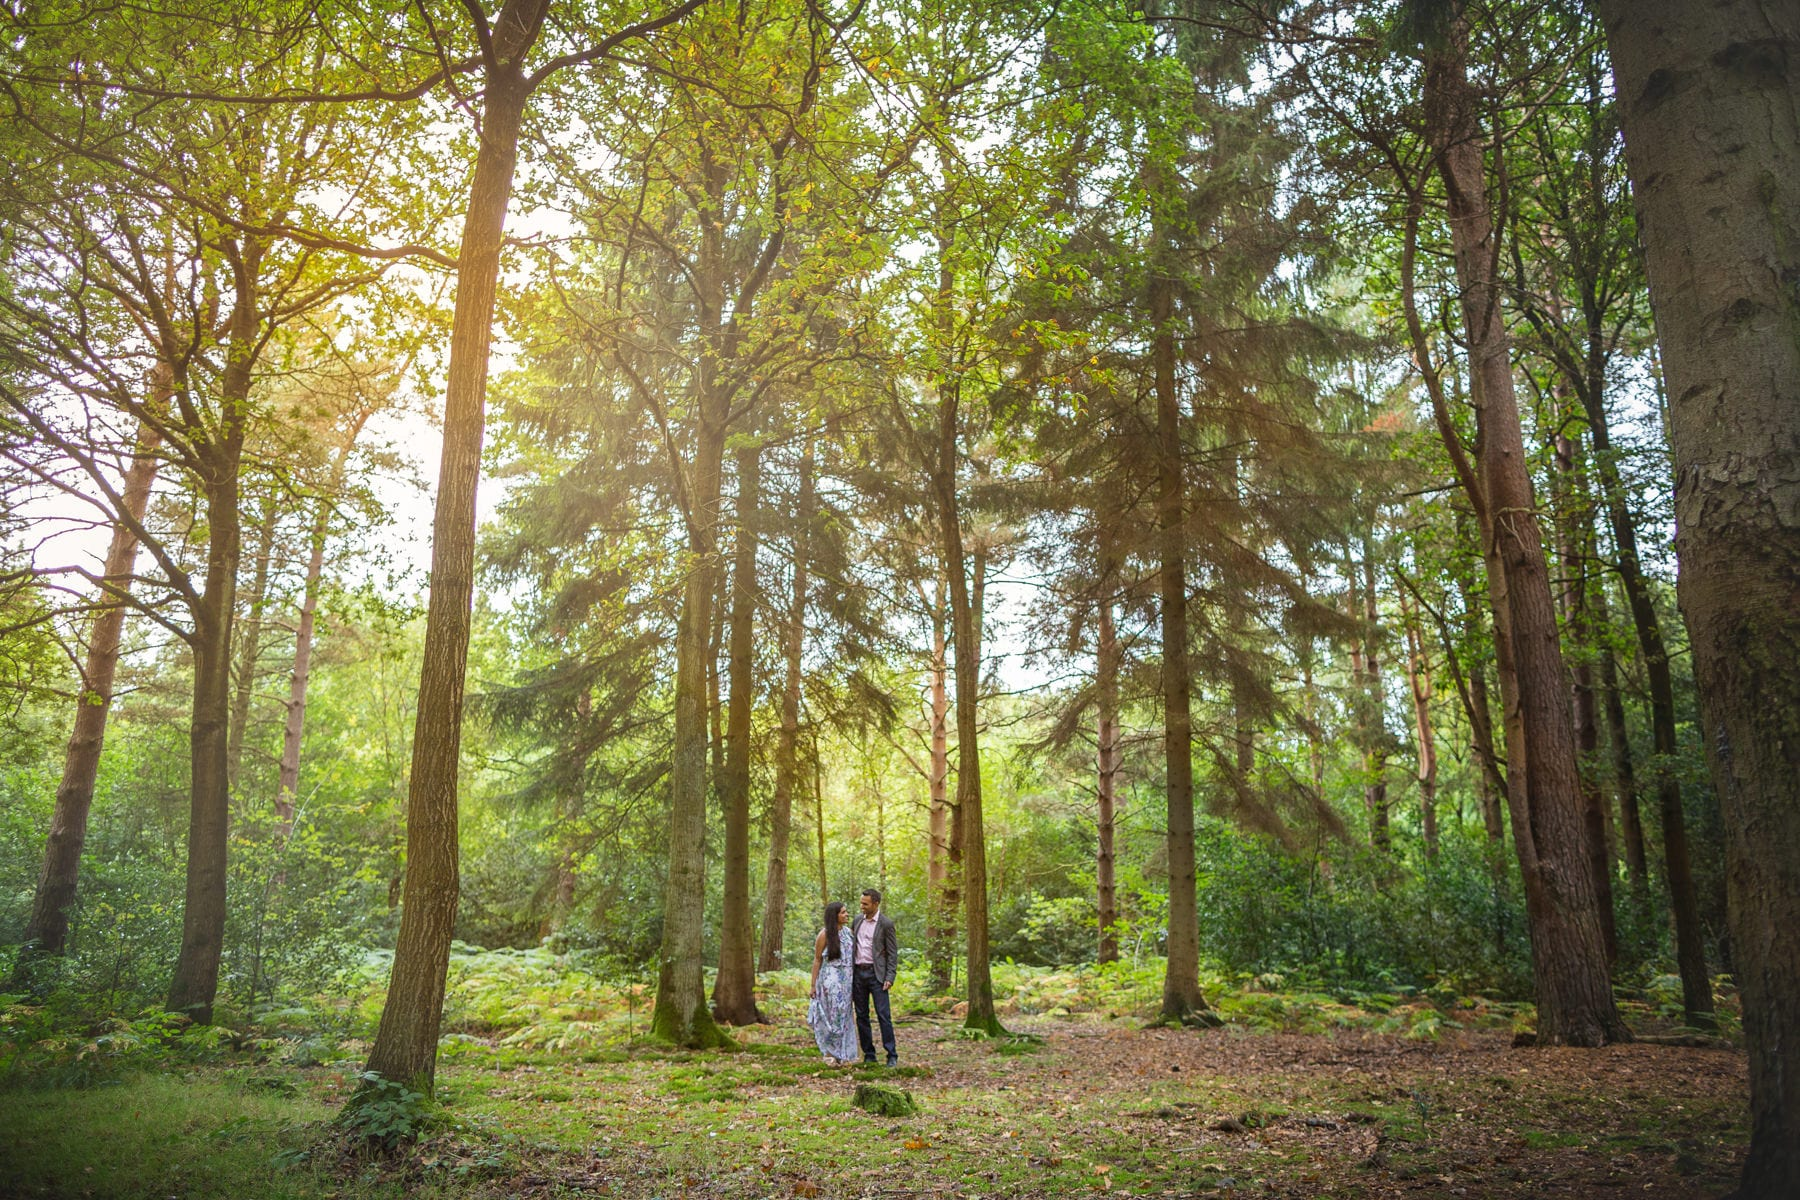 A pre engagement shoot in Hay Woods in Warwickshire. The couple embracing amongst the really tall trees.